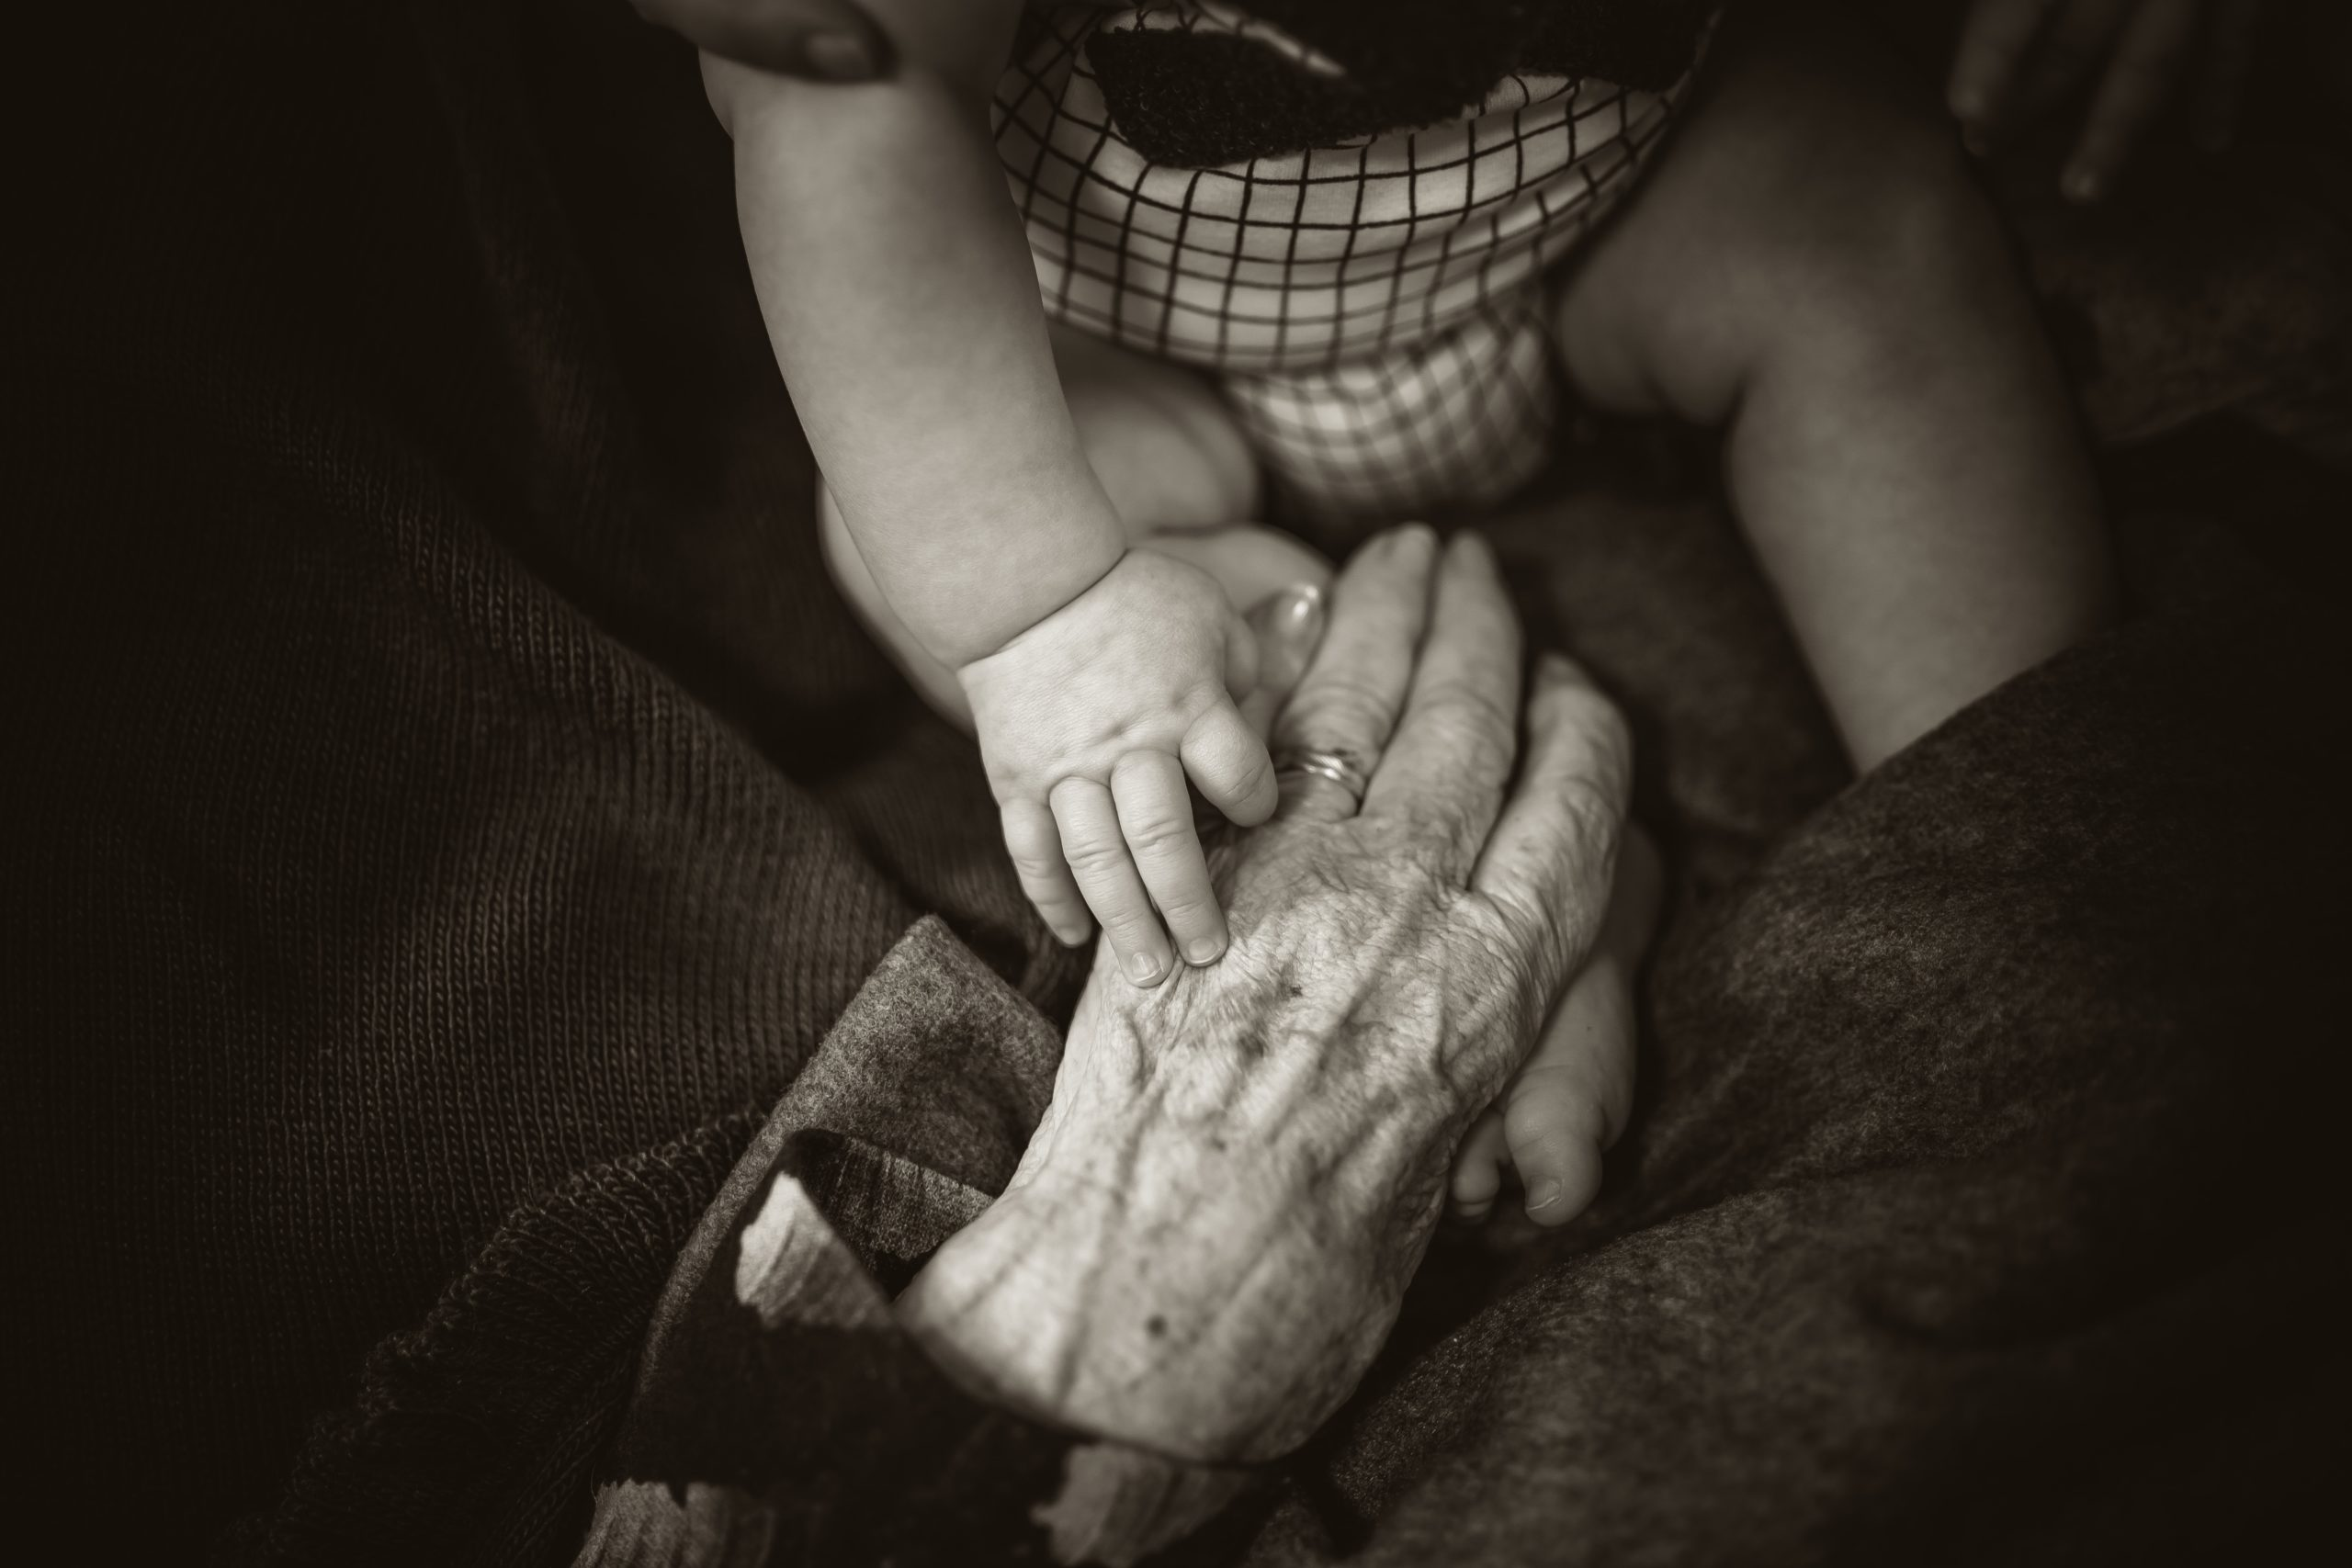 Photo of elderly person holding a baby's hand